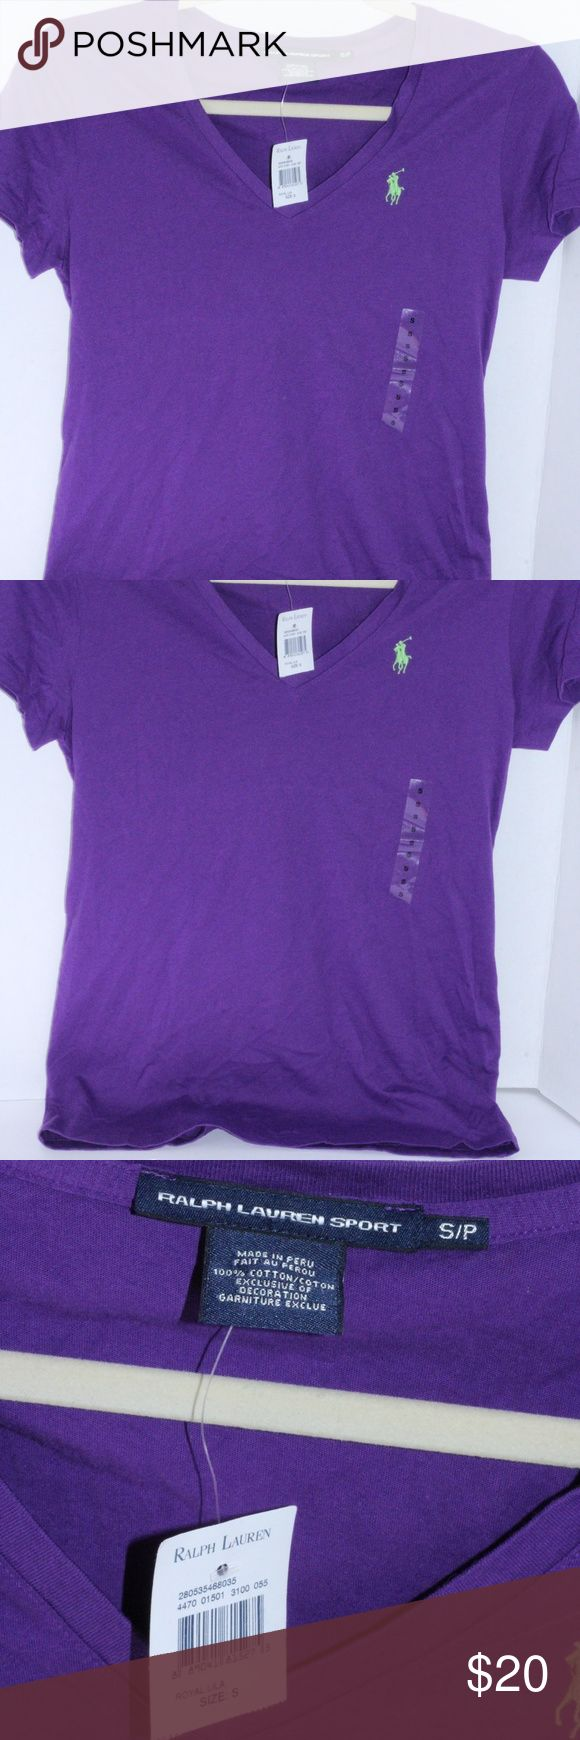 """NWT Polo Ralph Lauren T-Shirt Size S NWT Polo Ralph Lauren Short Sleeve T-Shirt. Size S. Color Purple with lime green logo. 100%Cotton.  Approx 16"""" from armpit to armpit Approx 24"""" from shoulder to hem. Polo by Ralph Lauren Tops Tees - Short Sleeve"""